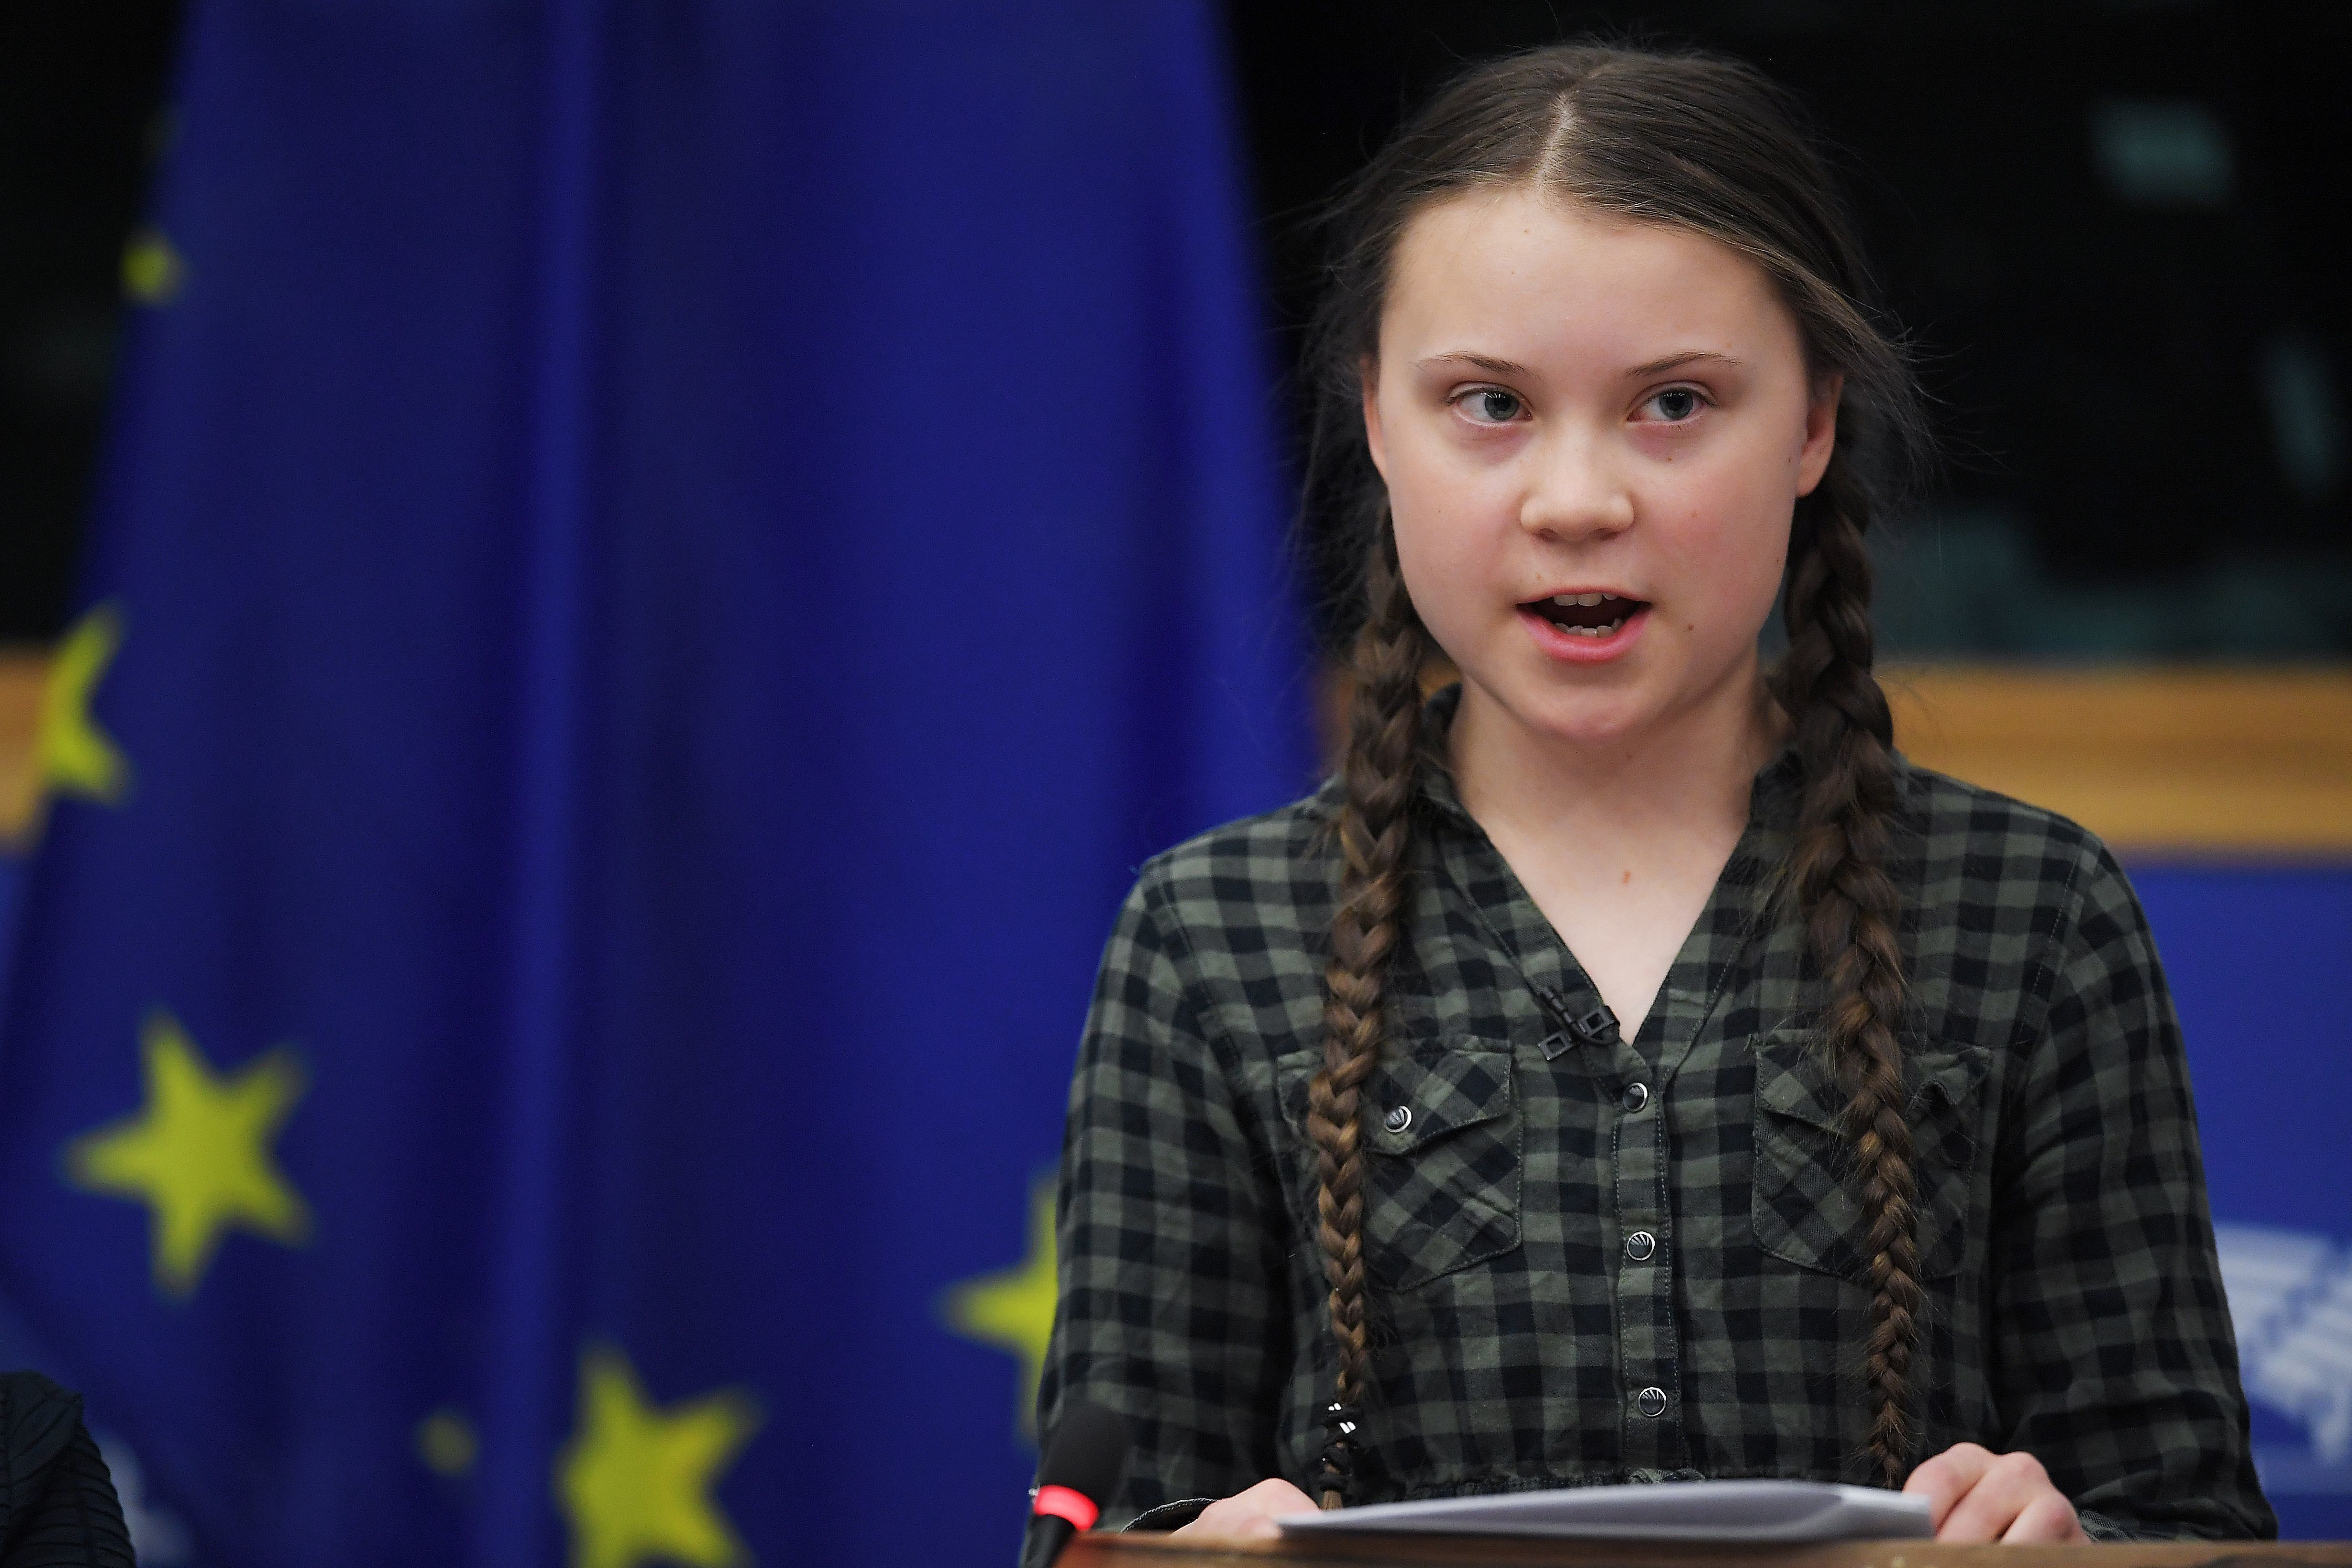 Swedish climate activist Greta Thunberg speaks during a debate with the EU Environment, Public Health and Food Safety Committee during a session at the European Parliament on April 16, 2019 in Strasbourg, eastern France. - Sweden's teenage activist Greta Thunberg on April 16 urged Europeans to vote in next month's elections on behalf of young people like her who cannot yet cast ballots but demand decisive action against climate change. During a visit to the European Parliament in the French city of Strasbourg, Thunberg, 16, told a press conference that time is running out to stop the ravages of global warming. (Photo by FREDERICK FLORIN / AFP)        (Photo credit should read FREDERICK FLORIN/AFP/Getty Images)